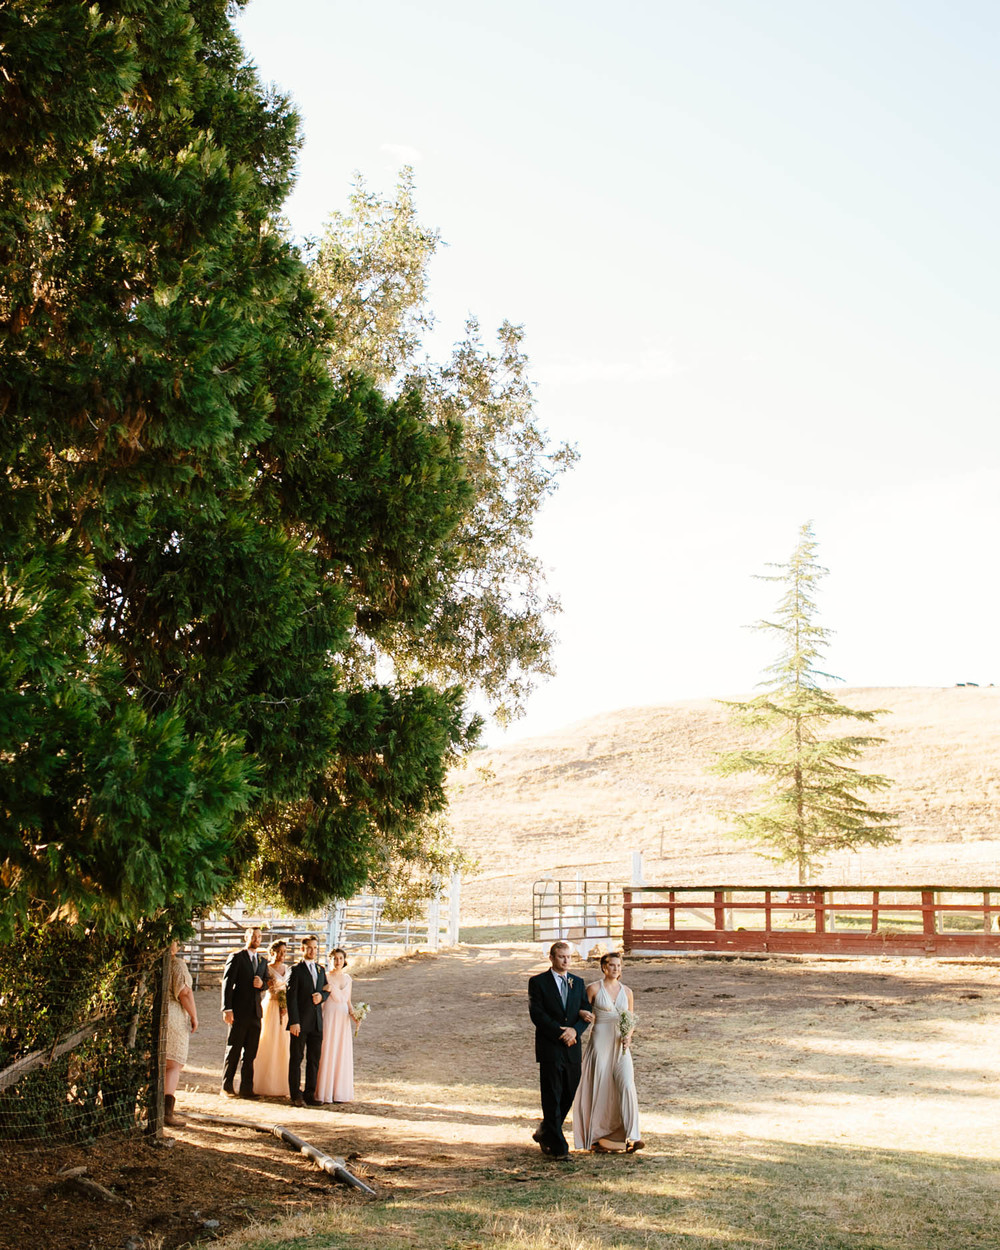 Napa Valley Vacaville Wedding Photographer - Hannah & Stephen - The Gathering Season x weareleoandkat 036.jpg